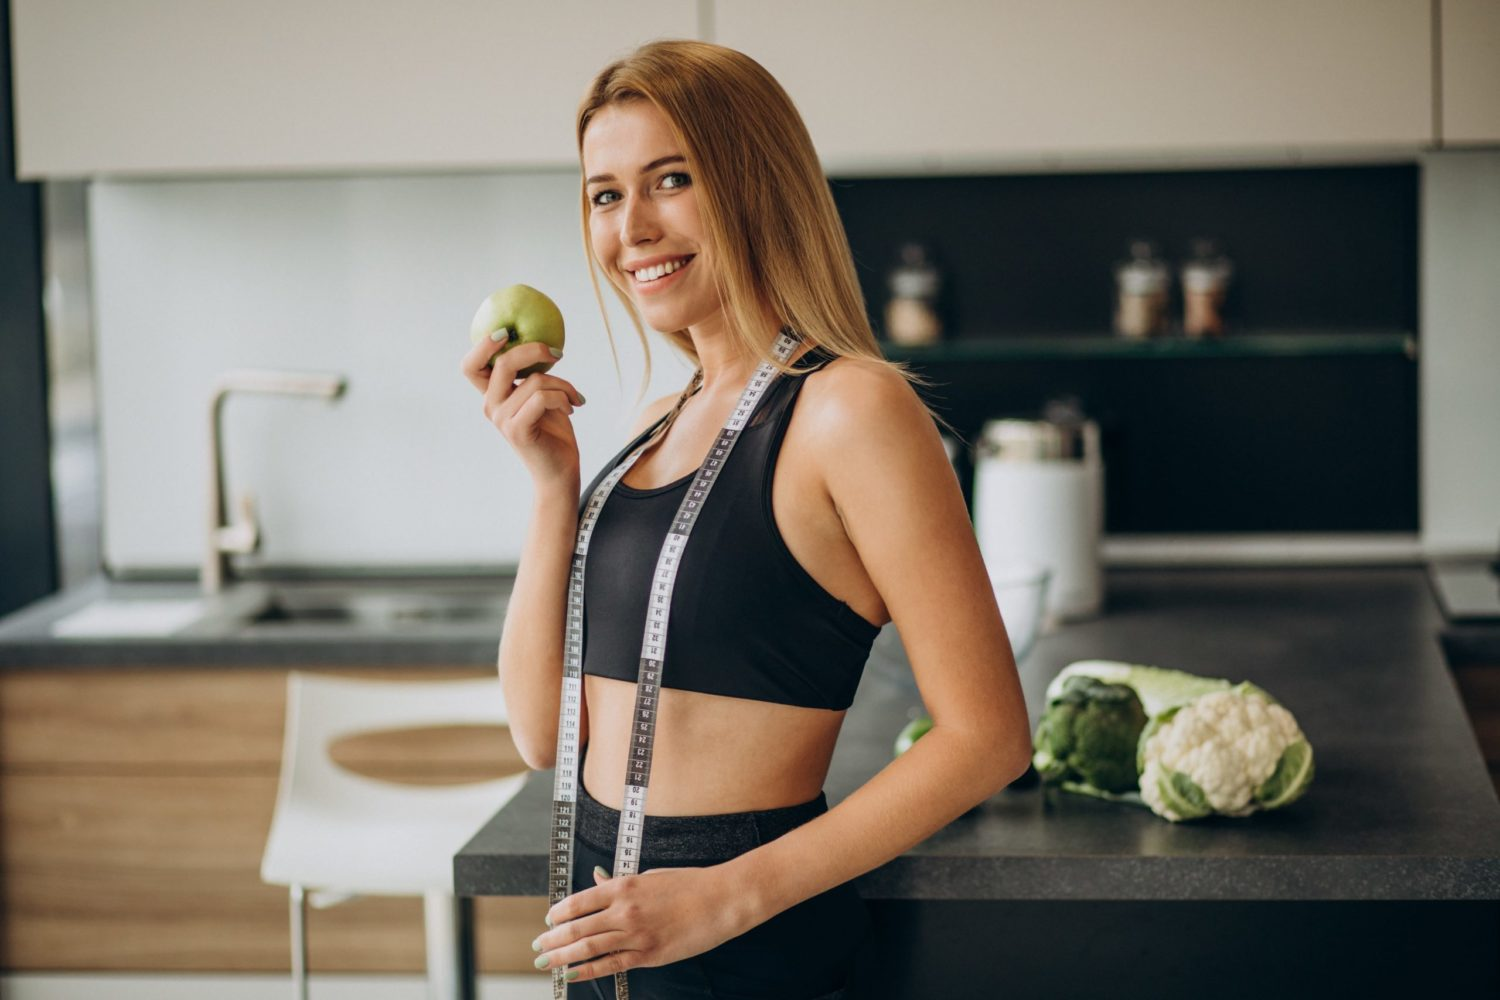 10 Practical Ways To Lose Weight Without Dieting